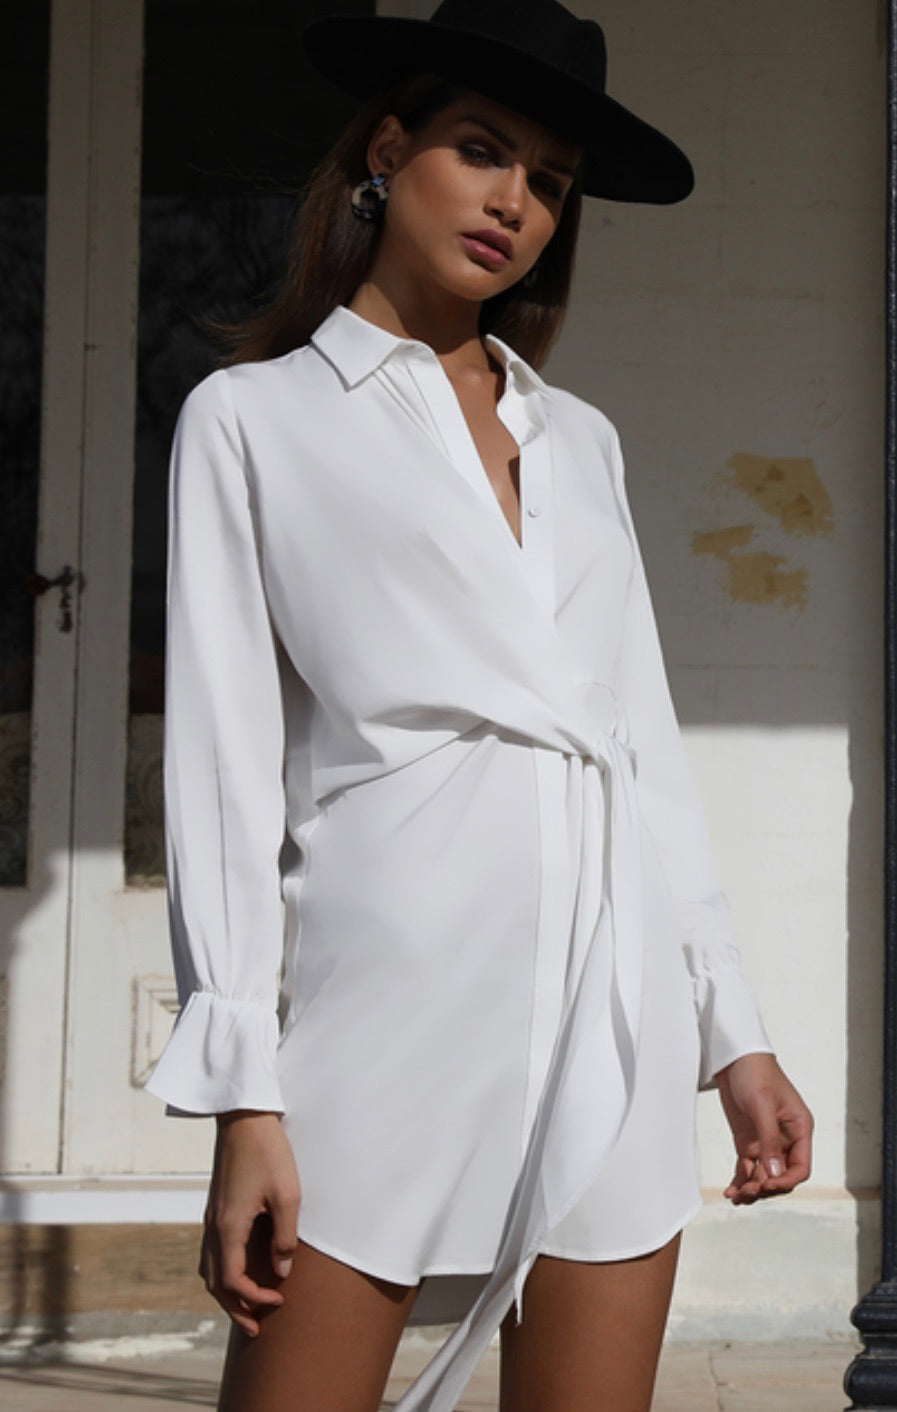 Cowgirl white shirt dress